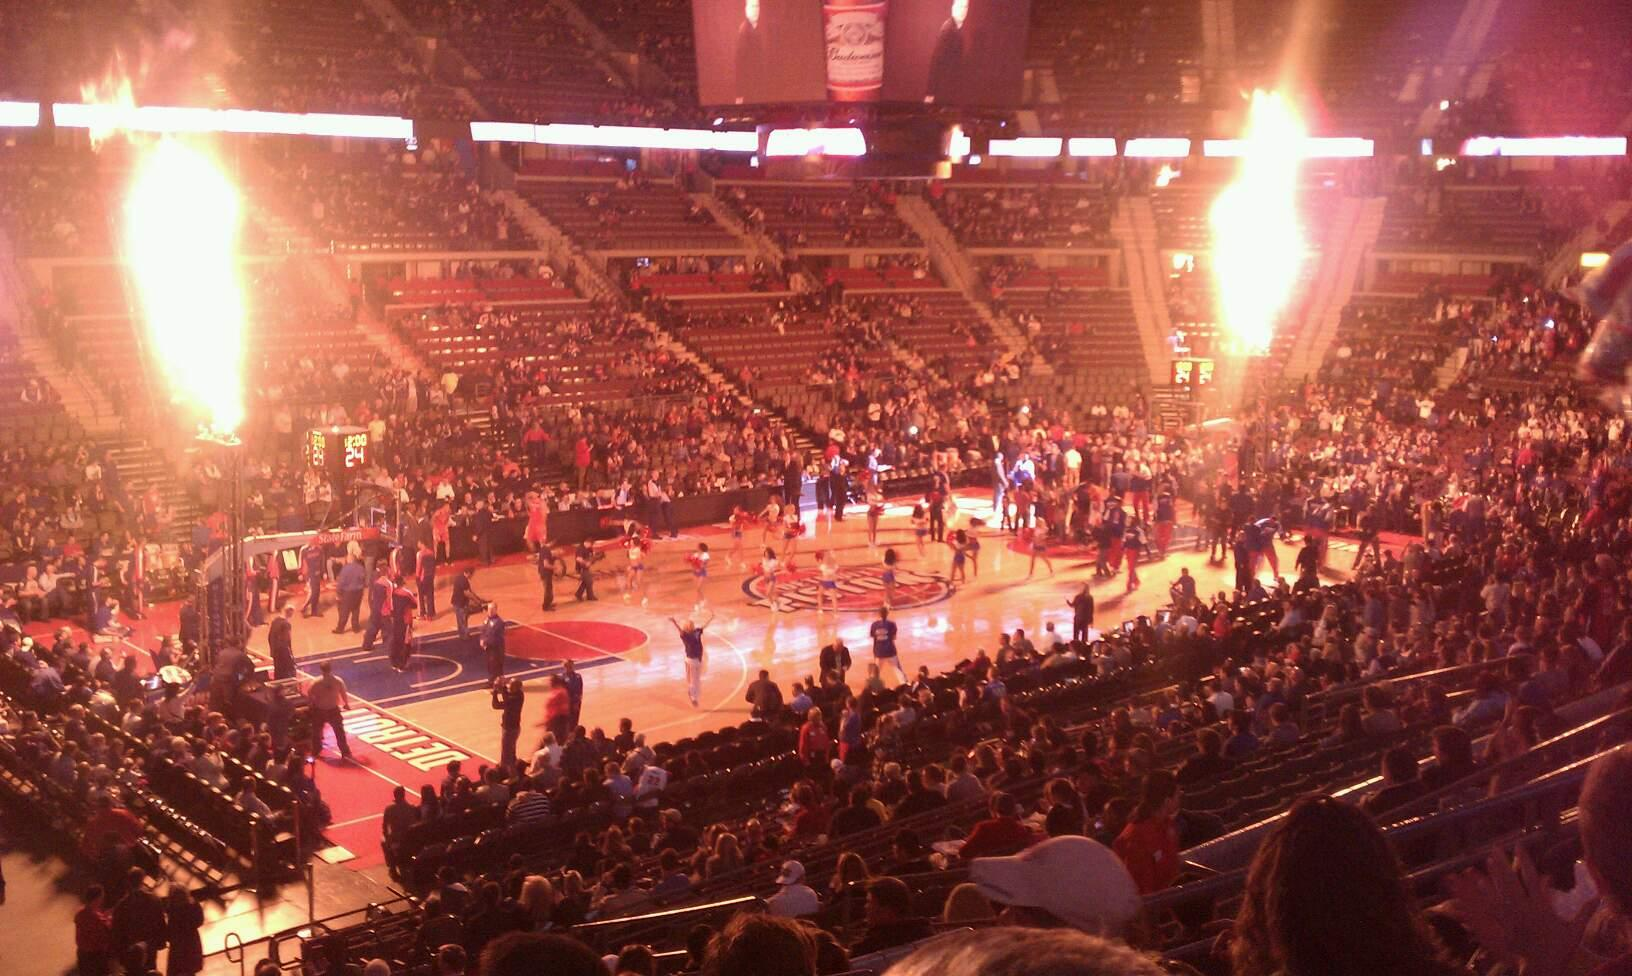 The Palace of Auburn Hills Section 103 Row n Seat 13